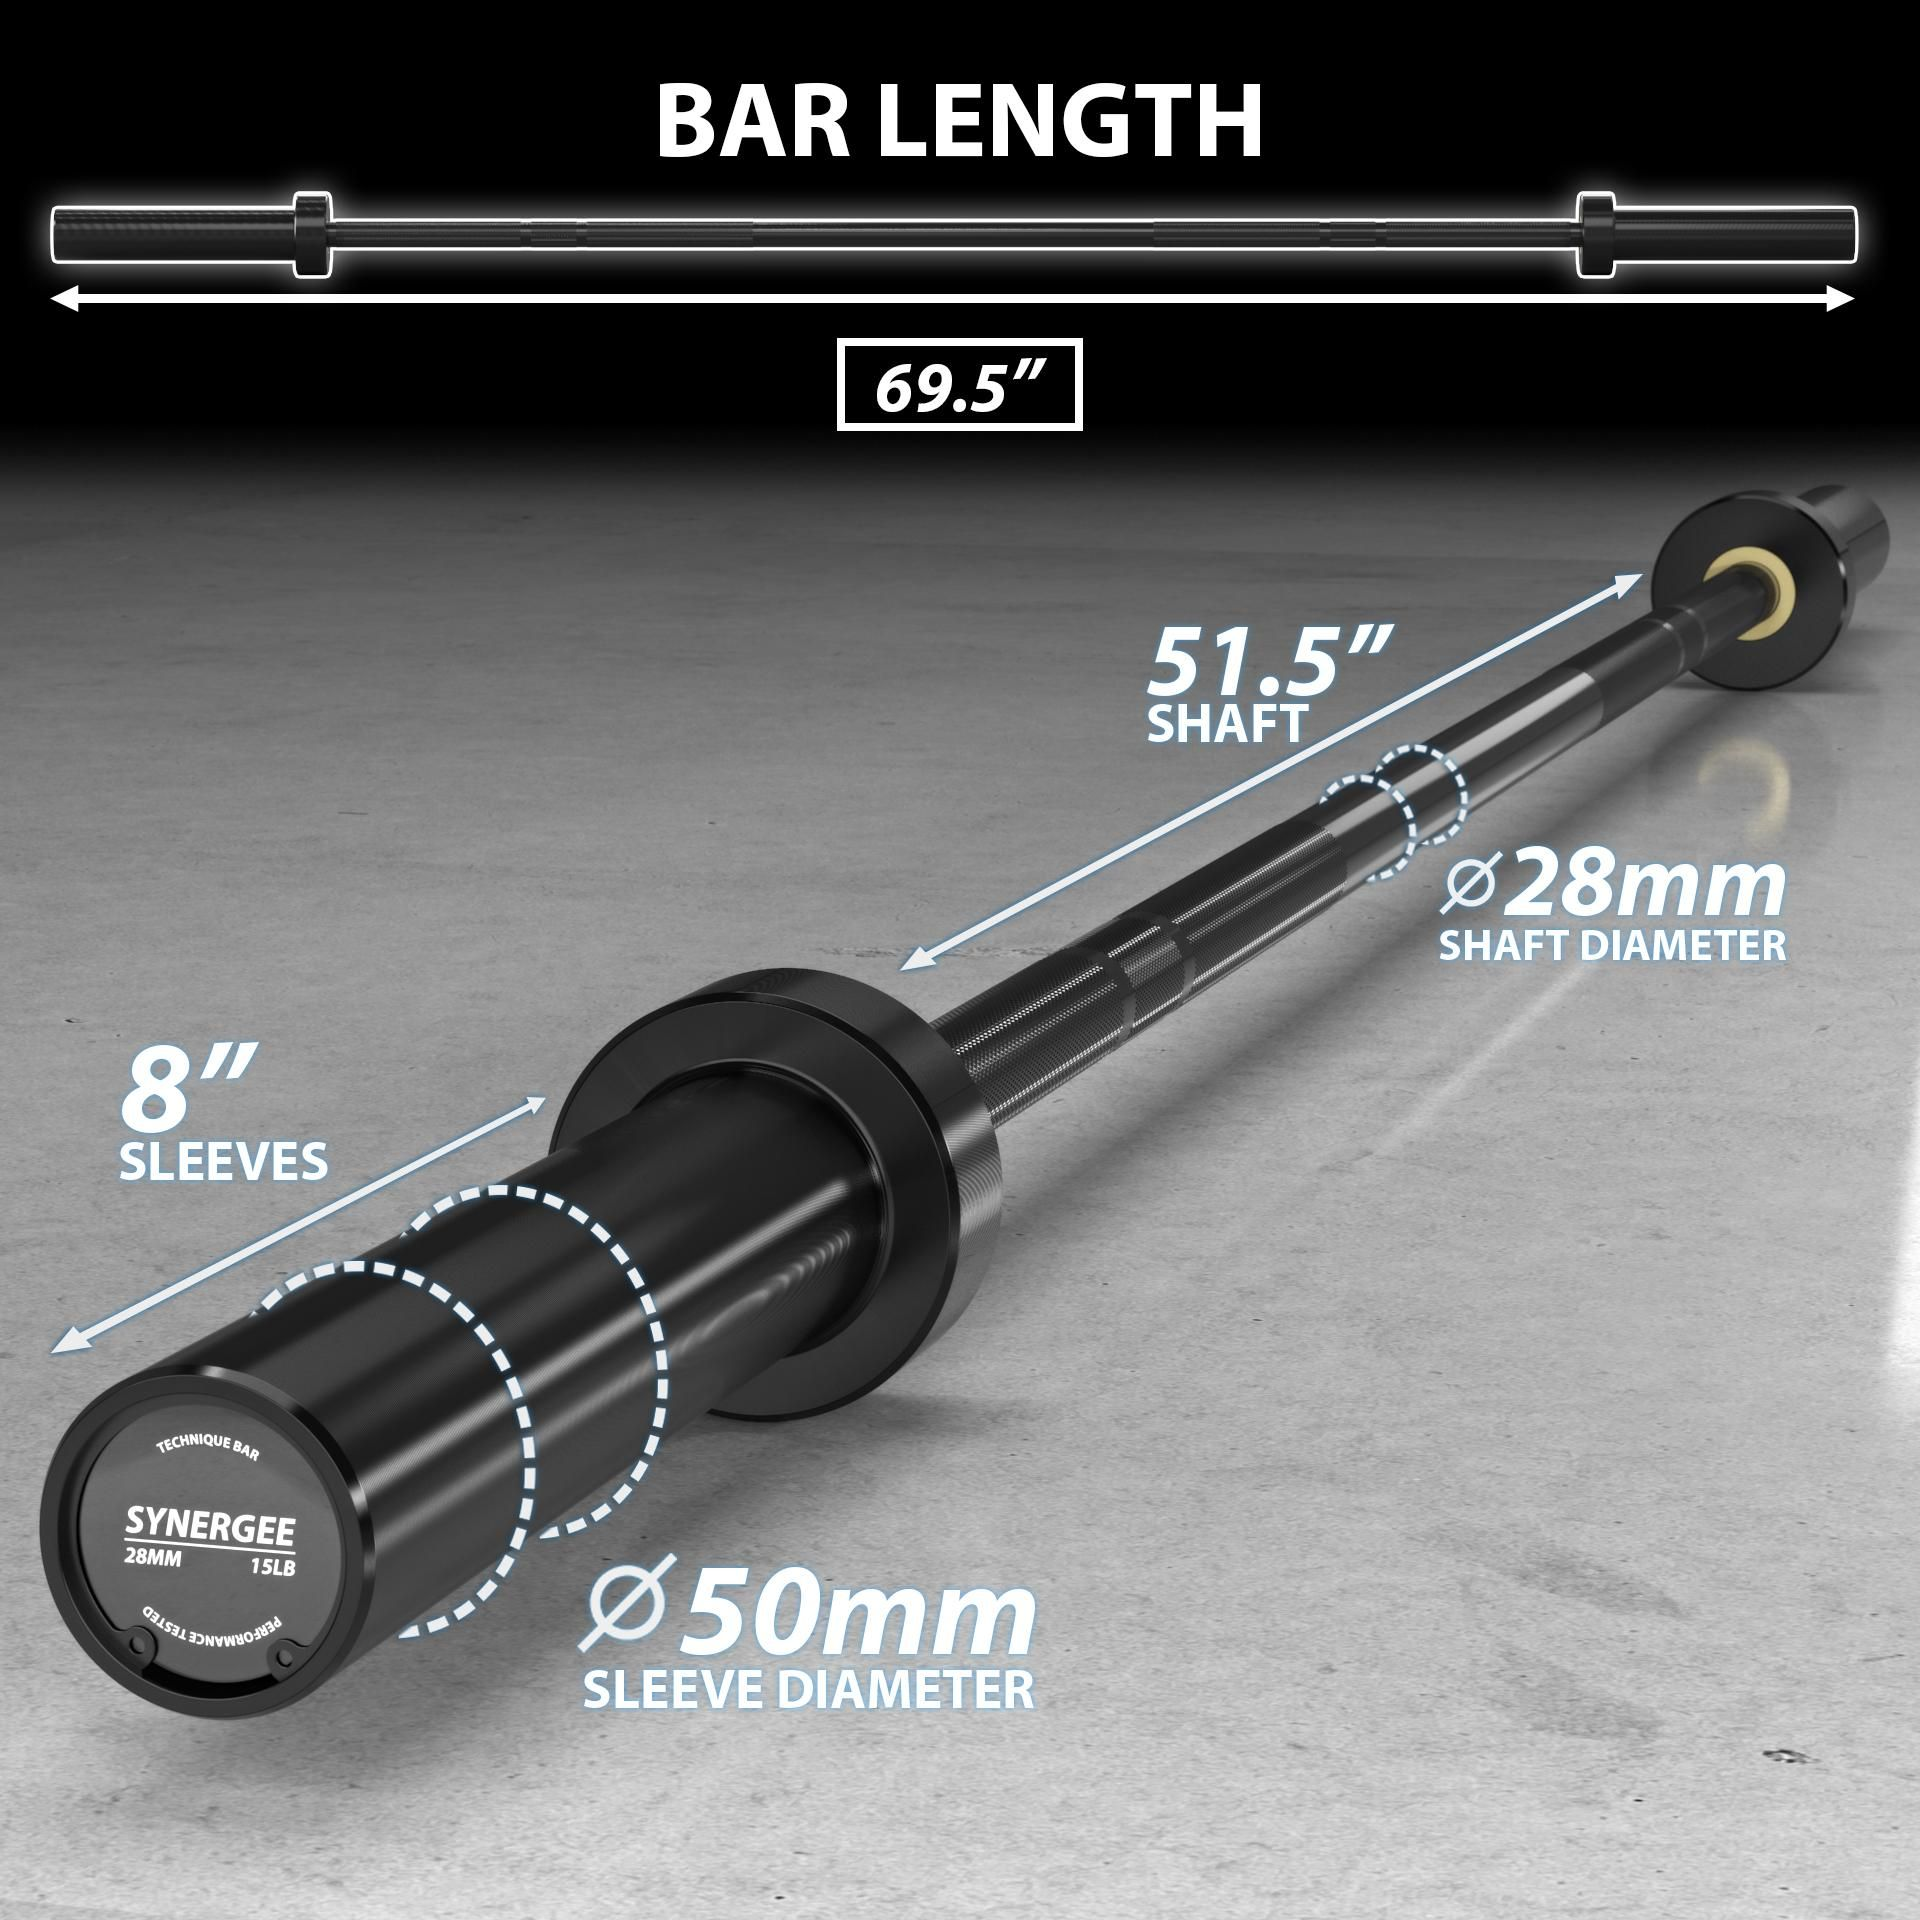 Synergee 15lb Technique Barbell Black Aluminum Bar for Form & Technique Training for Power & Olympic Lifting.